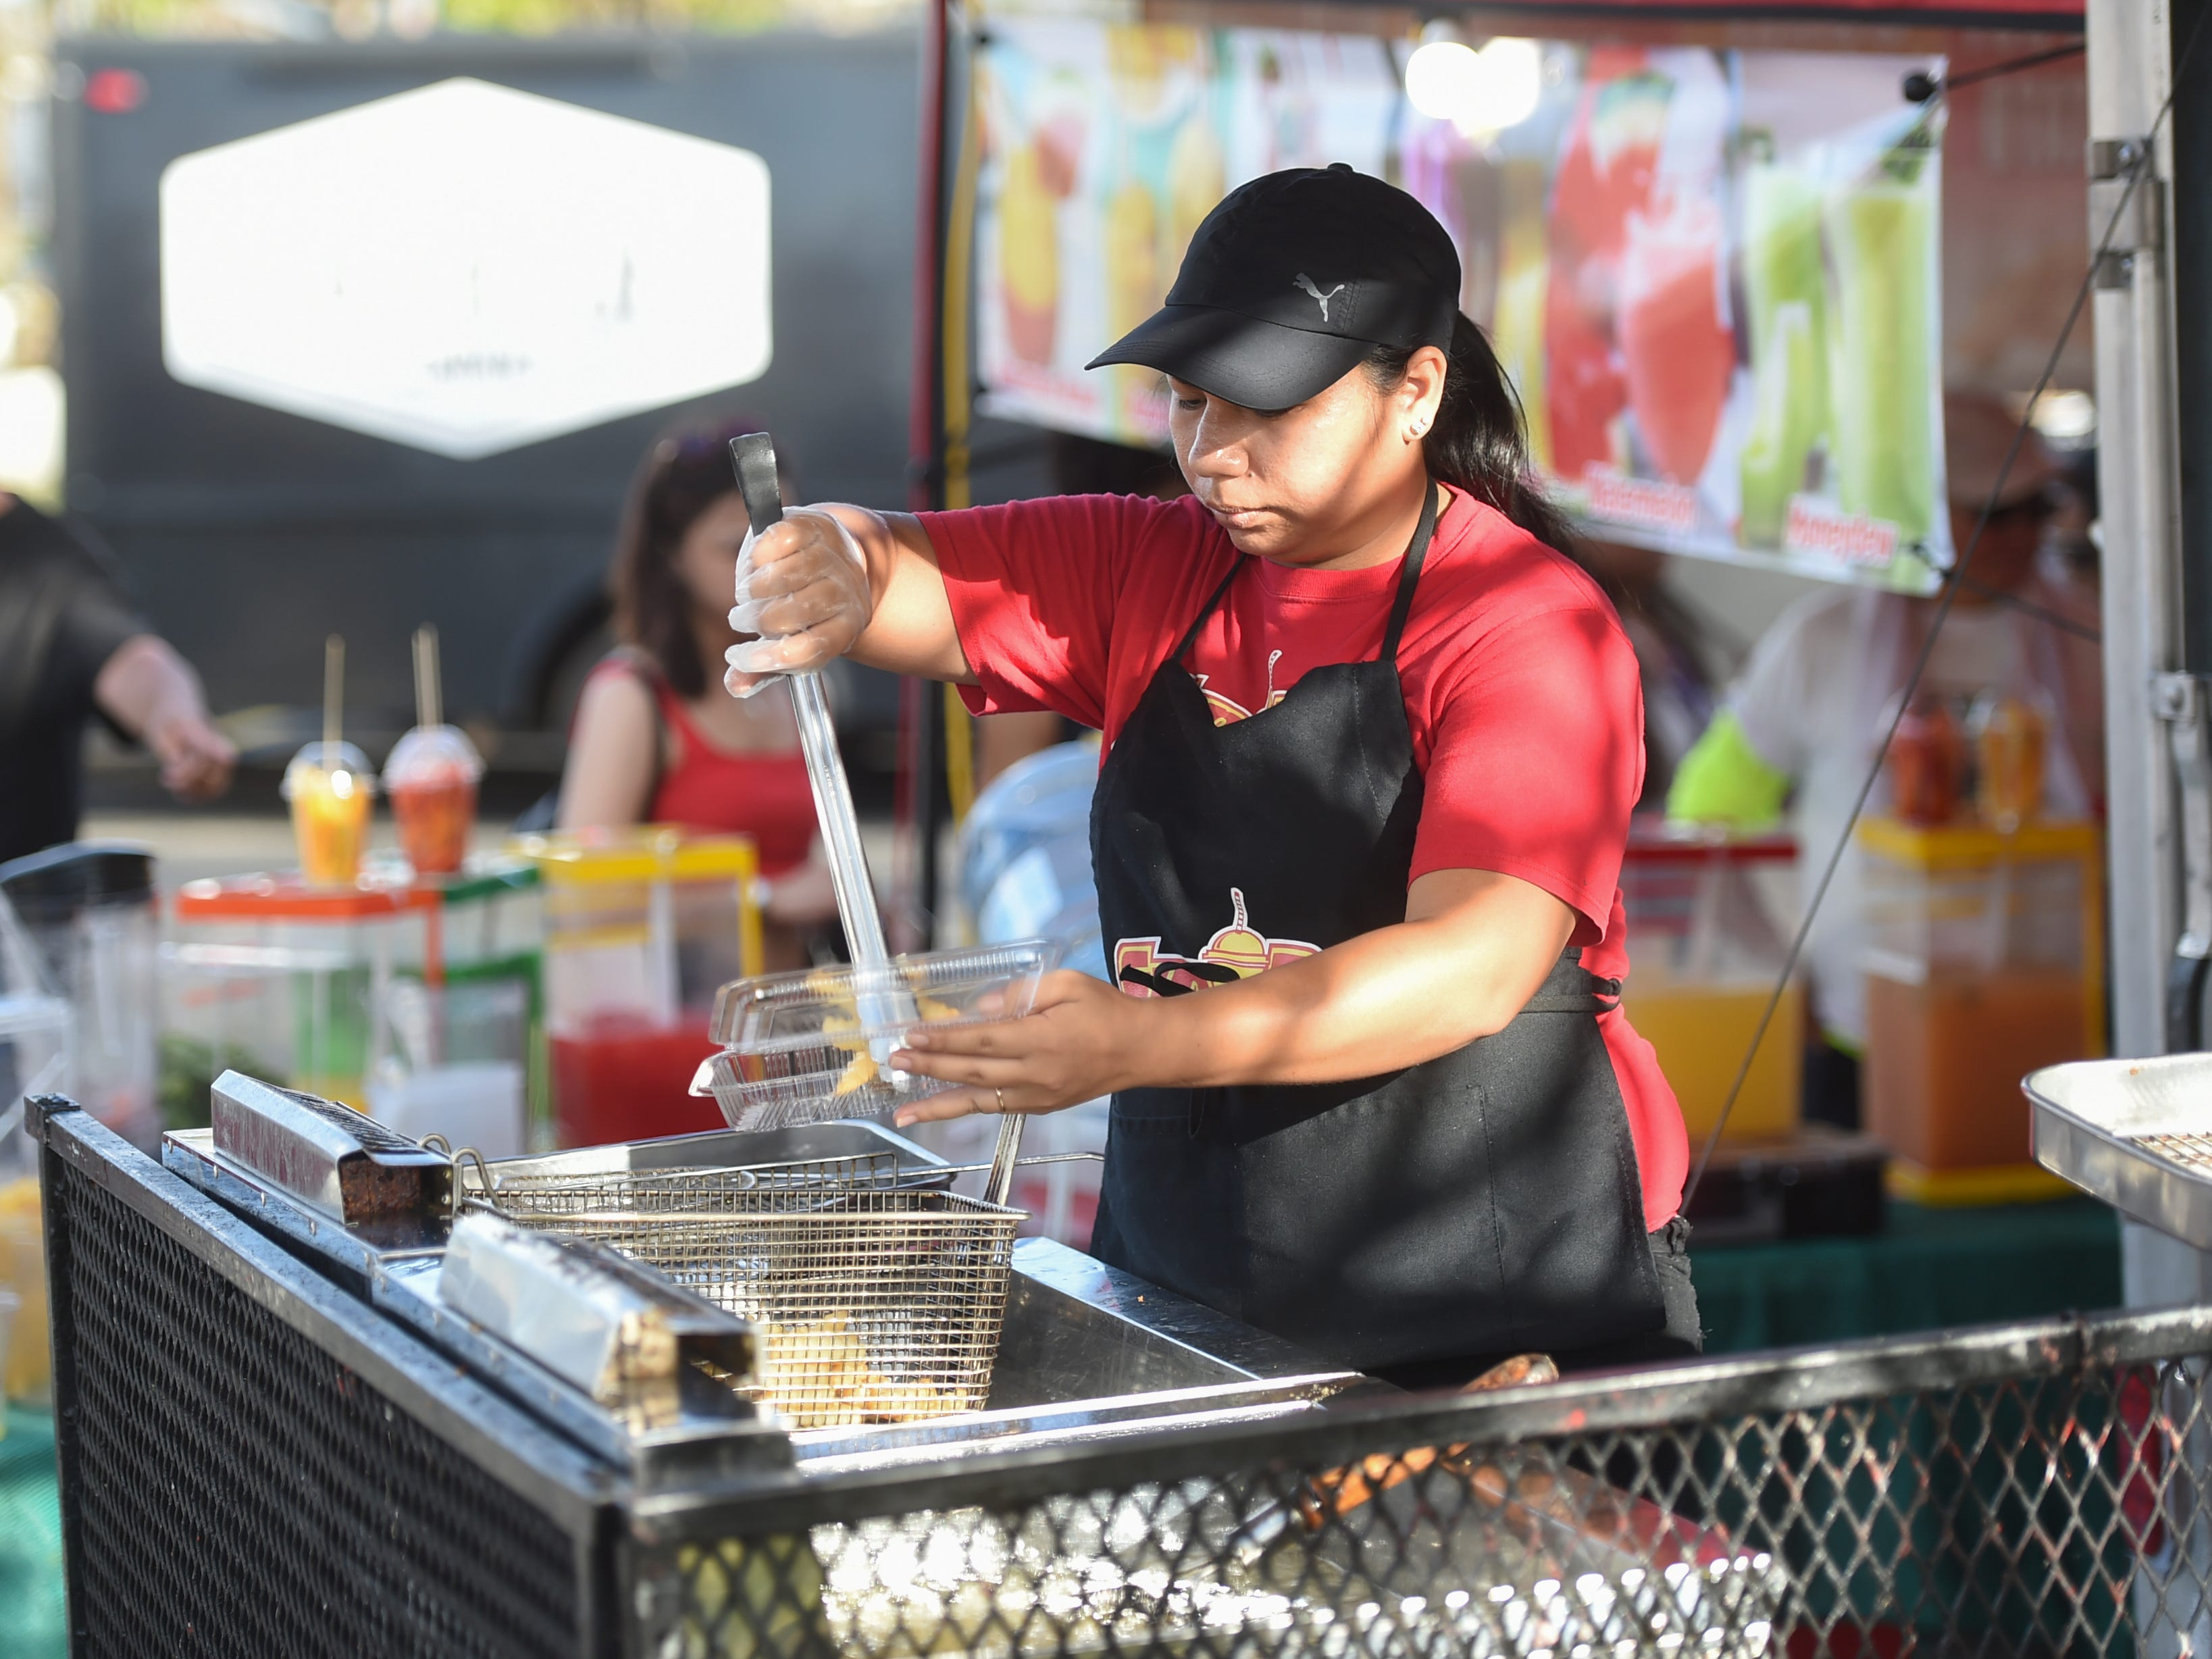 Sip'nDip Guam employee Venisha Blas prepares an order of fries during the Bank of Guam Ifit Run and Block Party at Chamorro Village in Hagåtña, March 9, 2019.